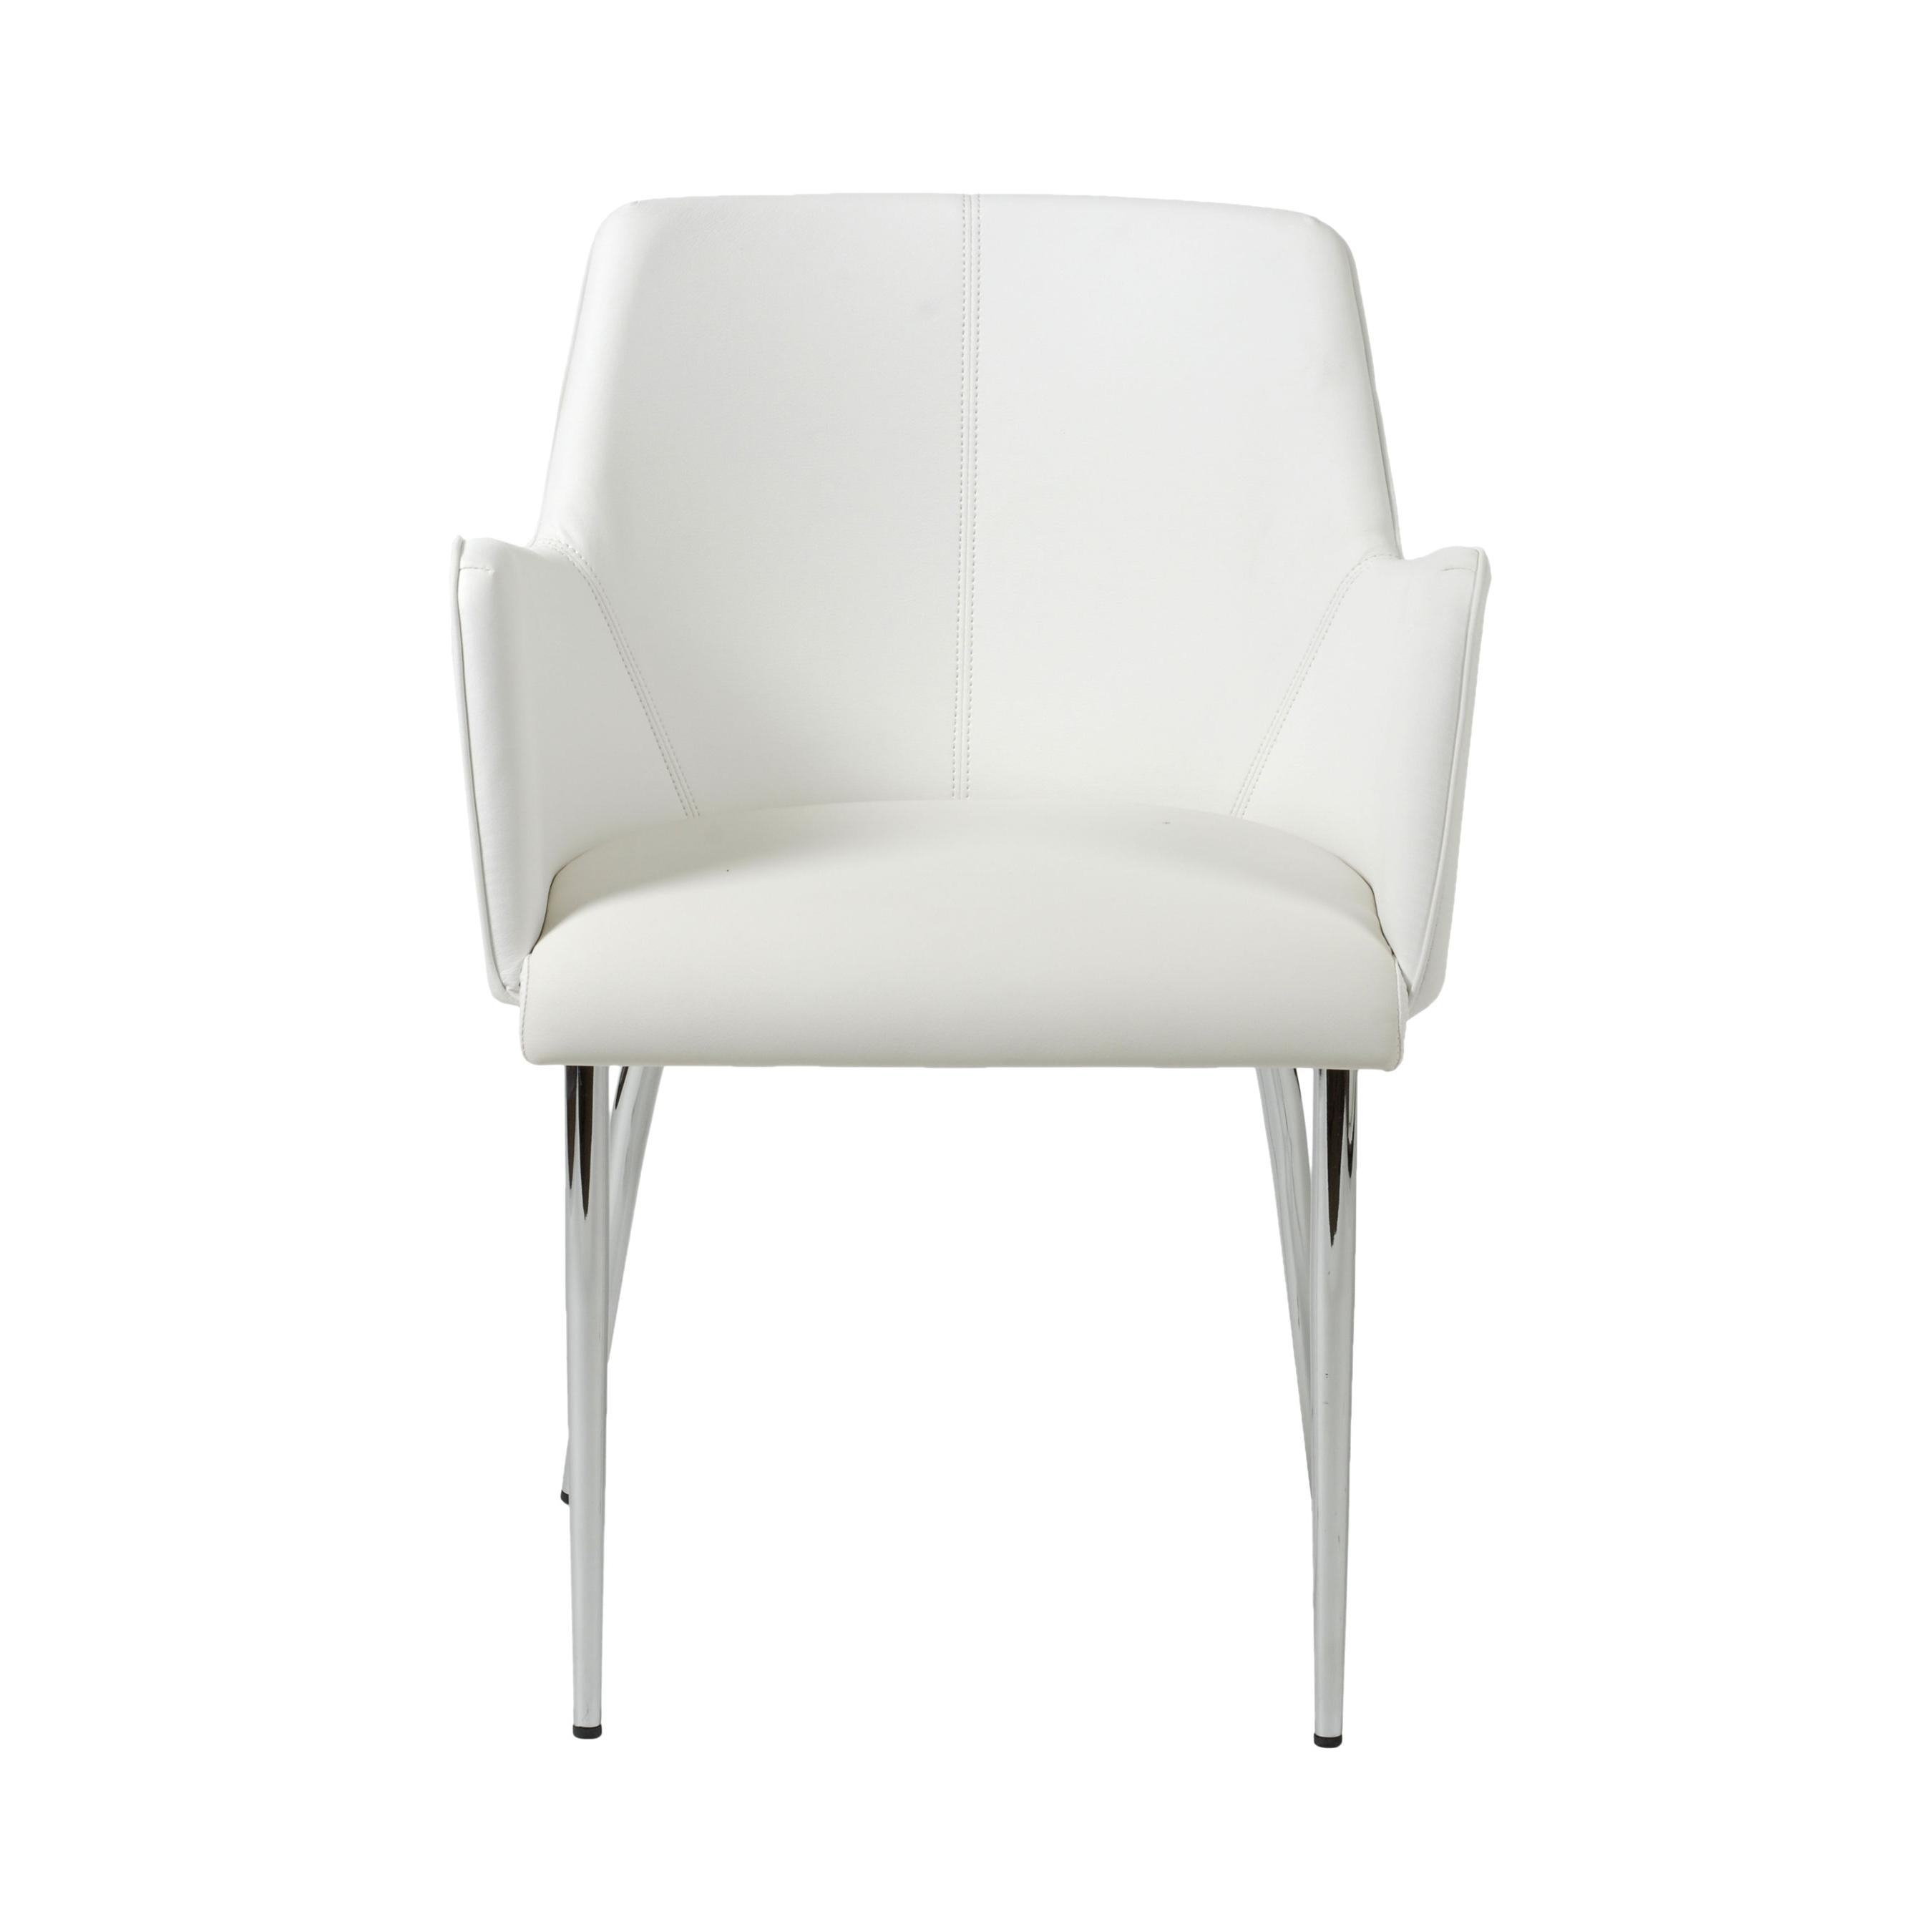 Comfortable White Leatherette Guest or Conference Armchair (Set of 2)